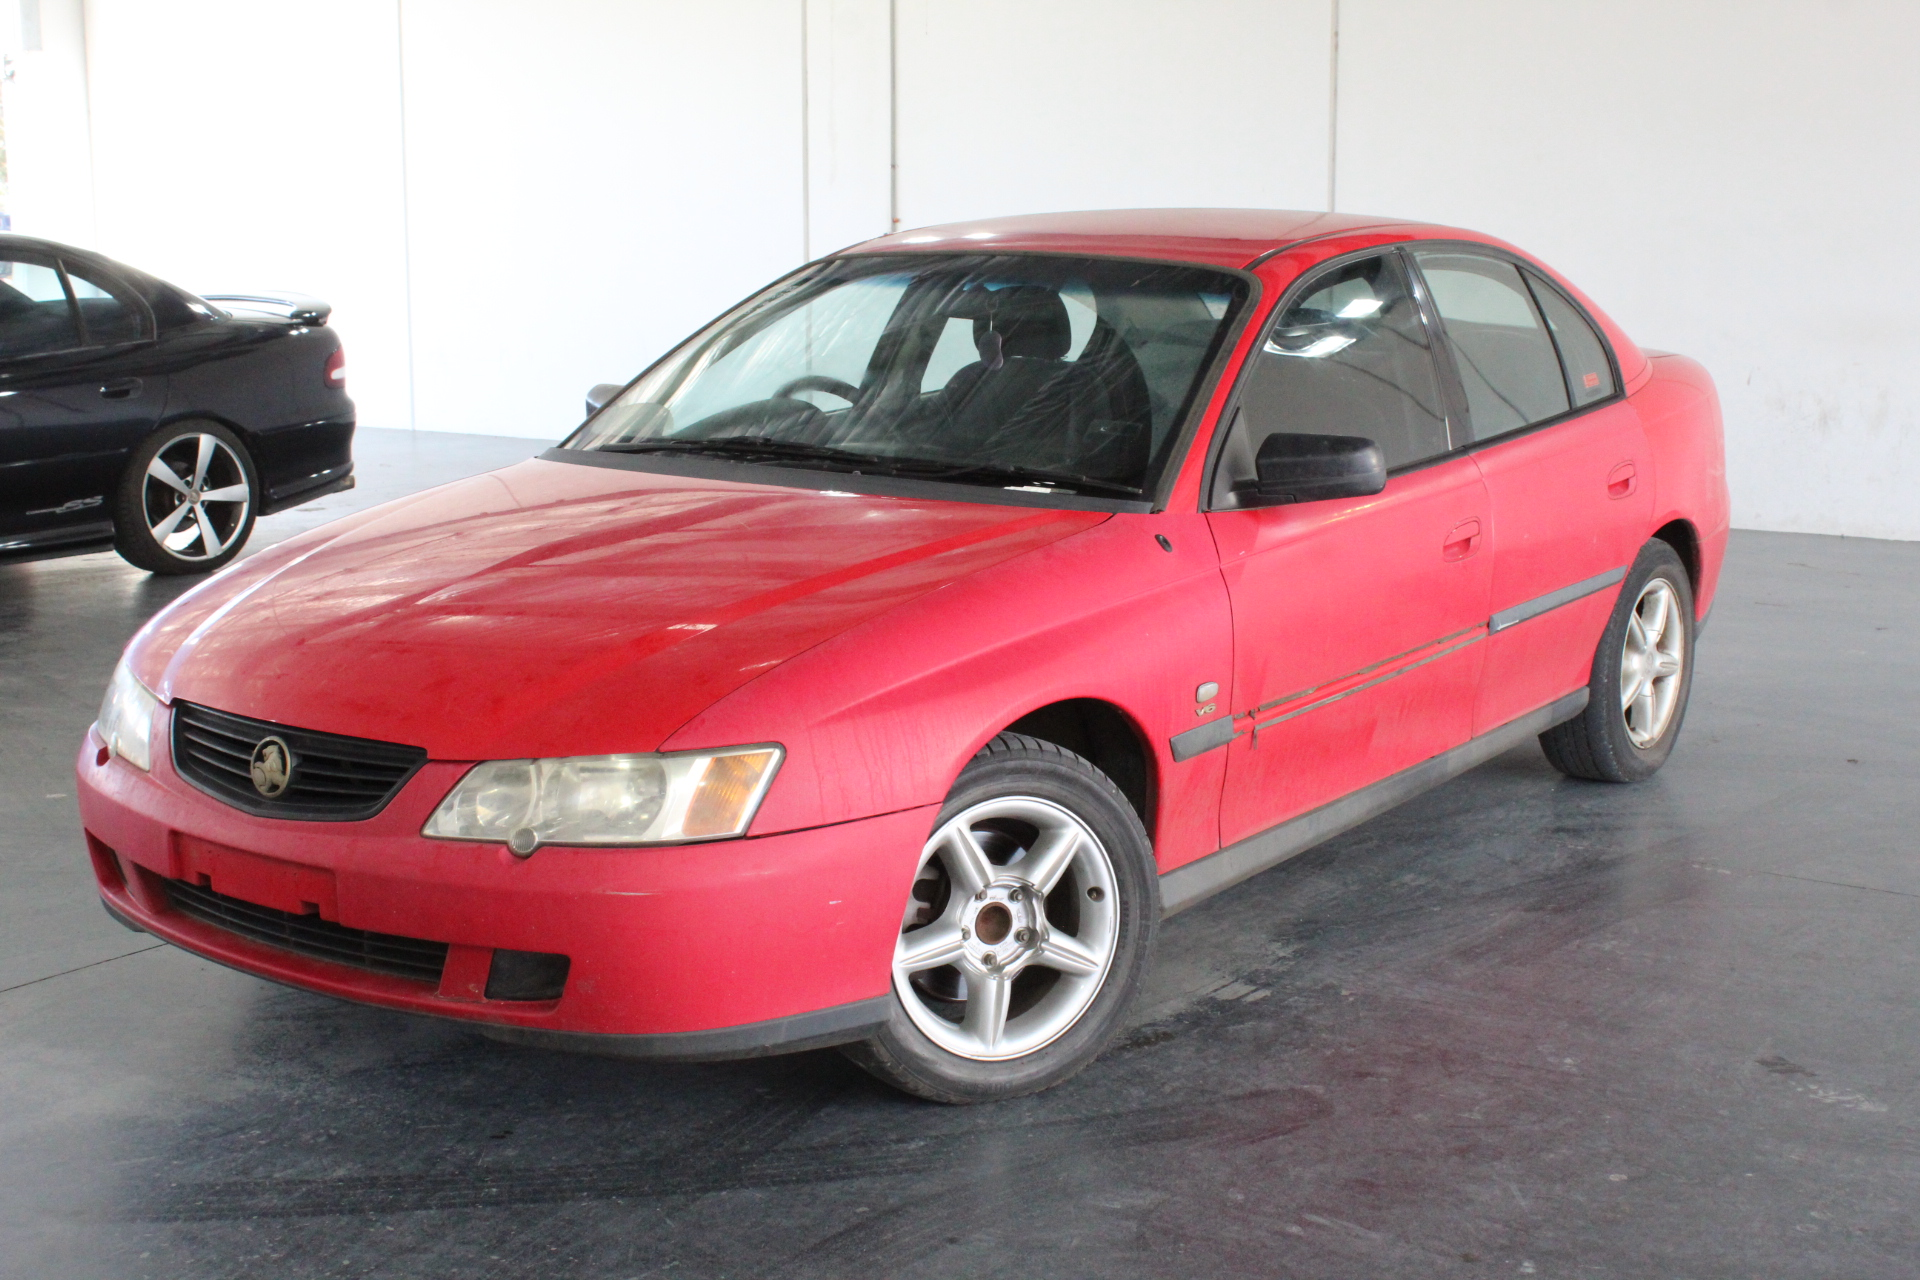 2003 Holden Commodore Executive VY Automatic Sedan